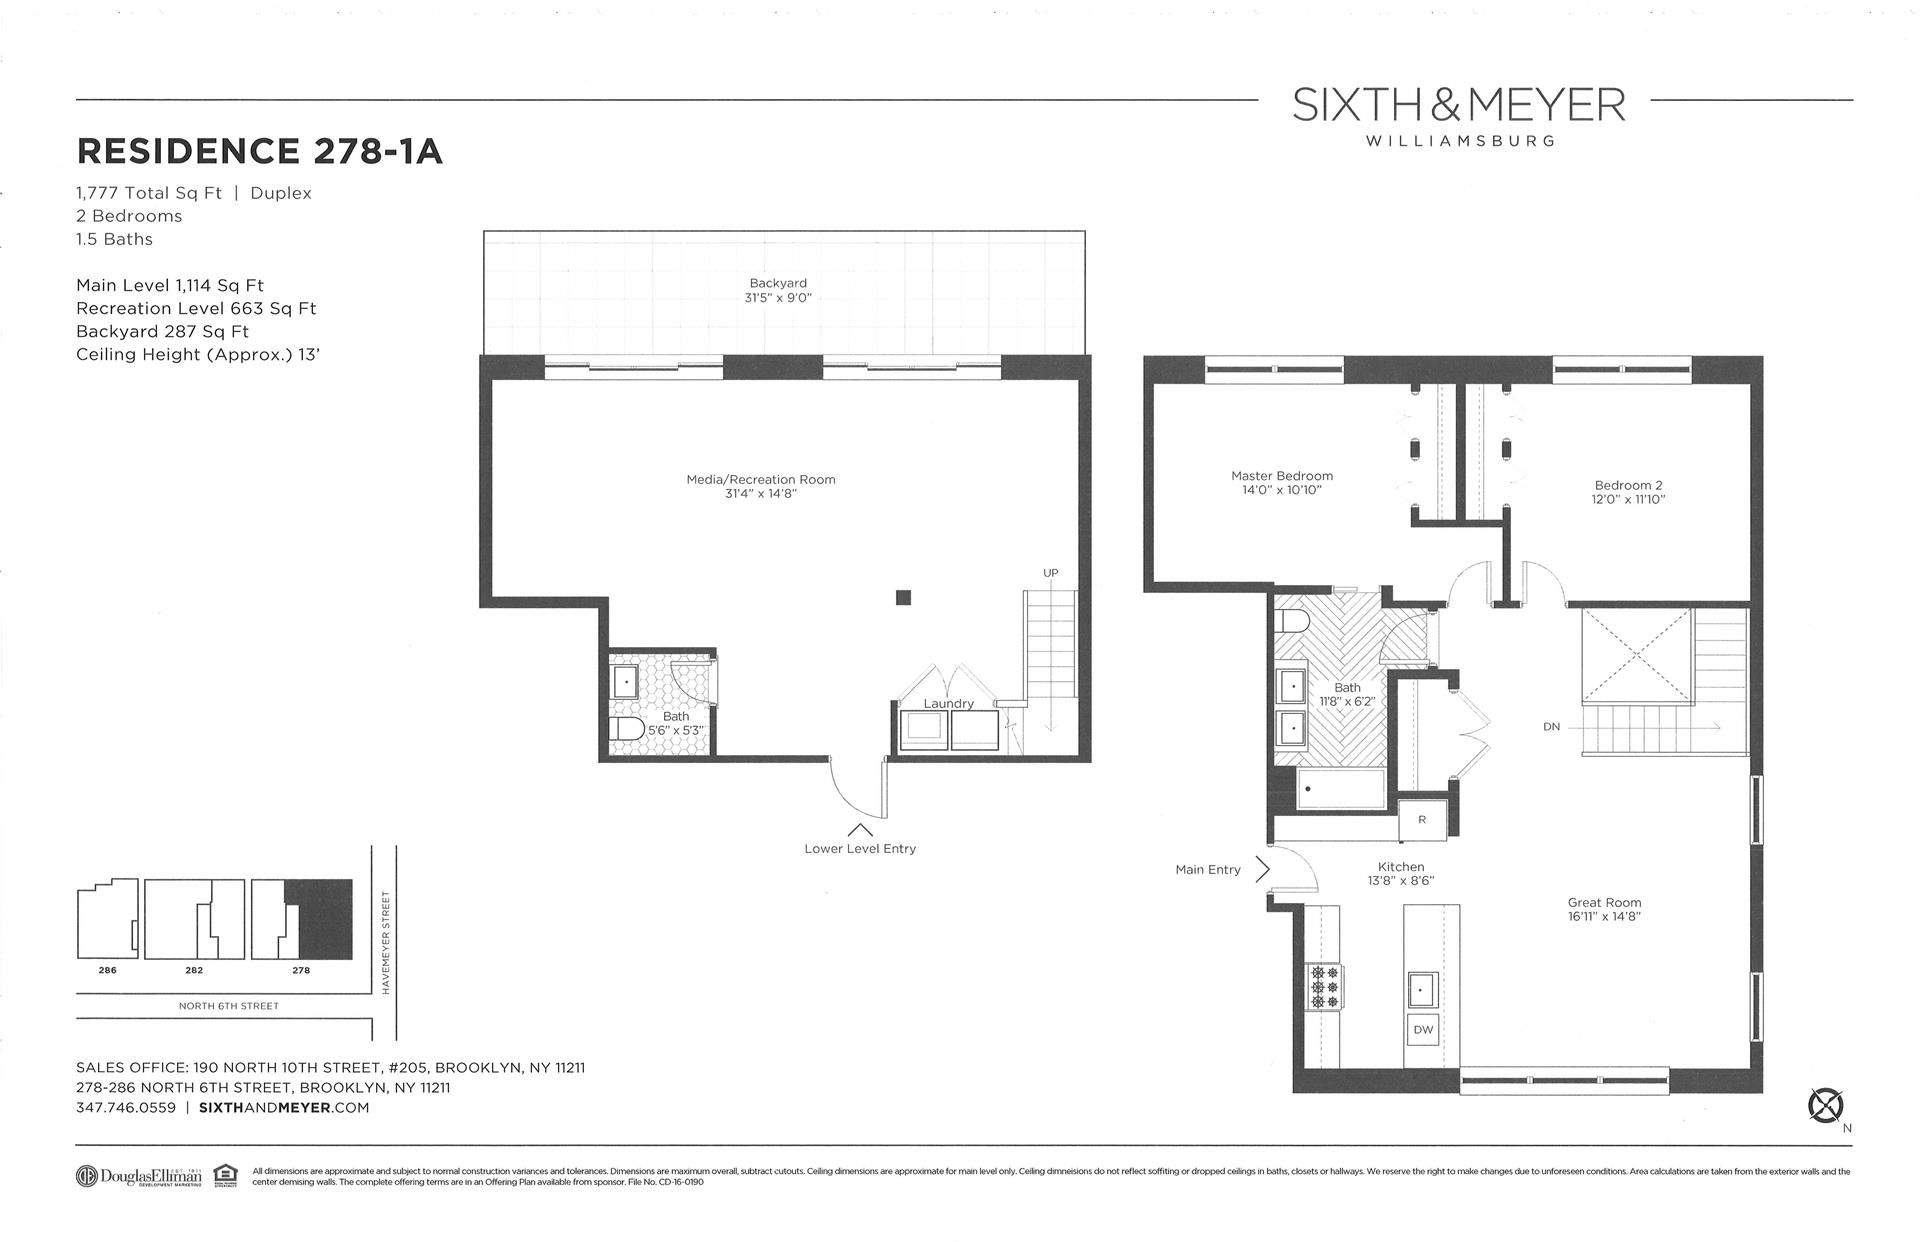 Floor plan of Sixth & Meyer, 278-286 North 6th St, 278/1A - Williamsburg, New York